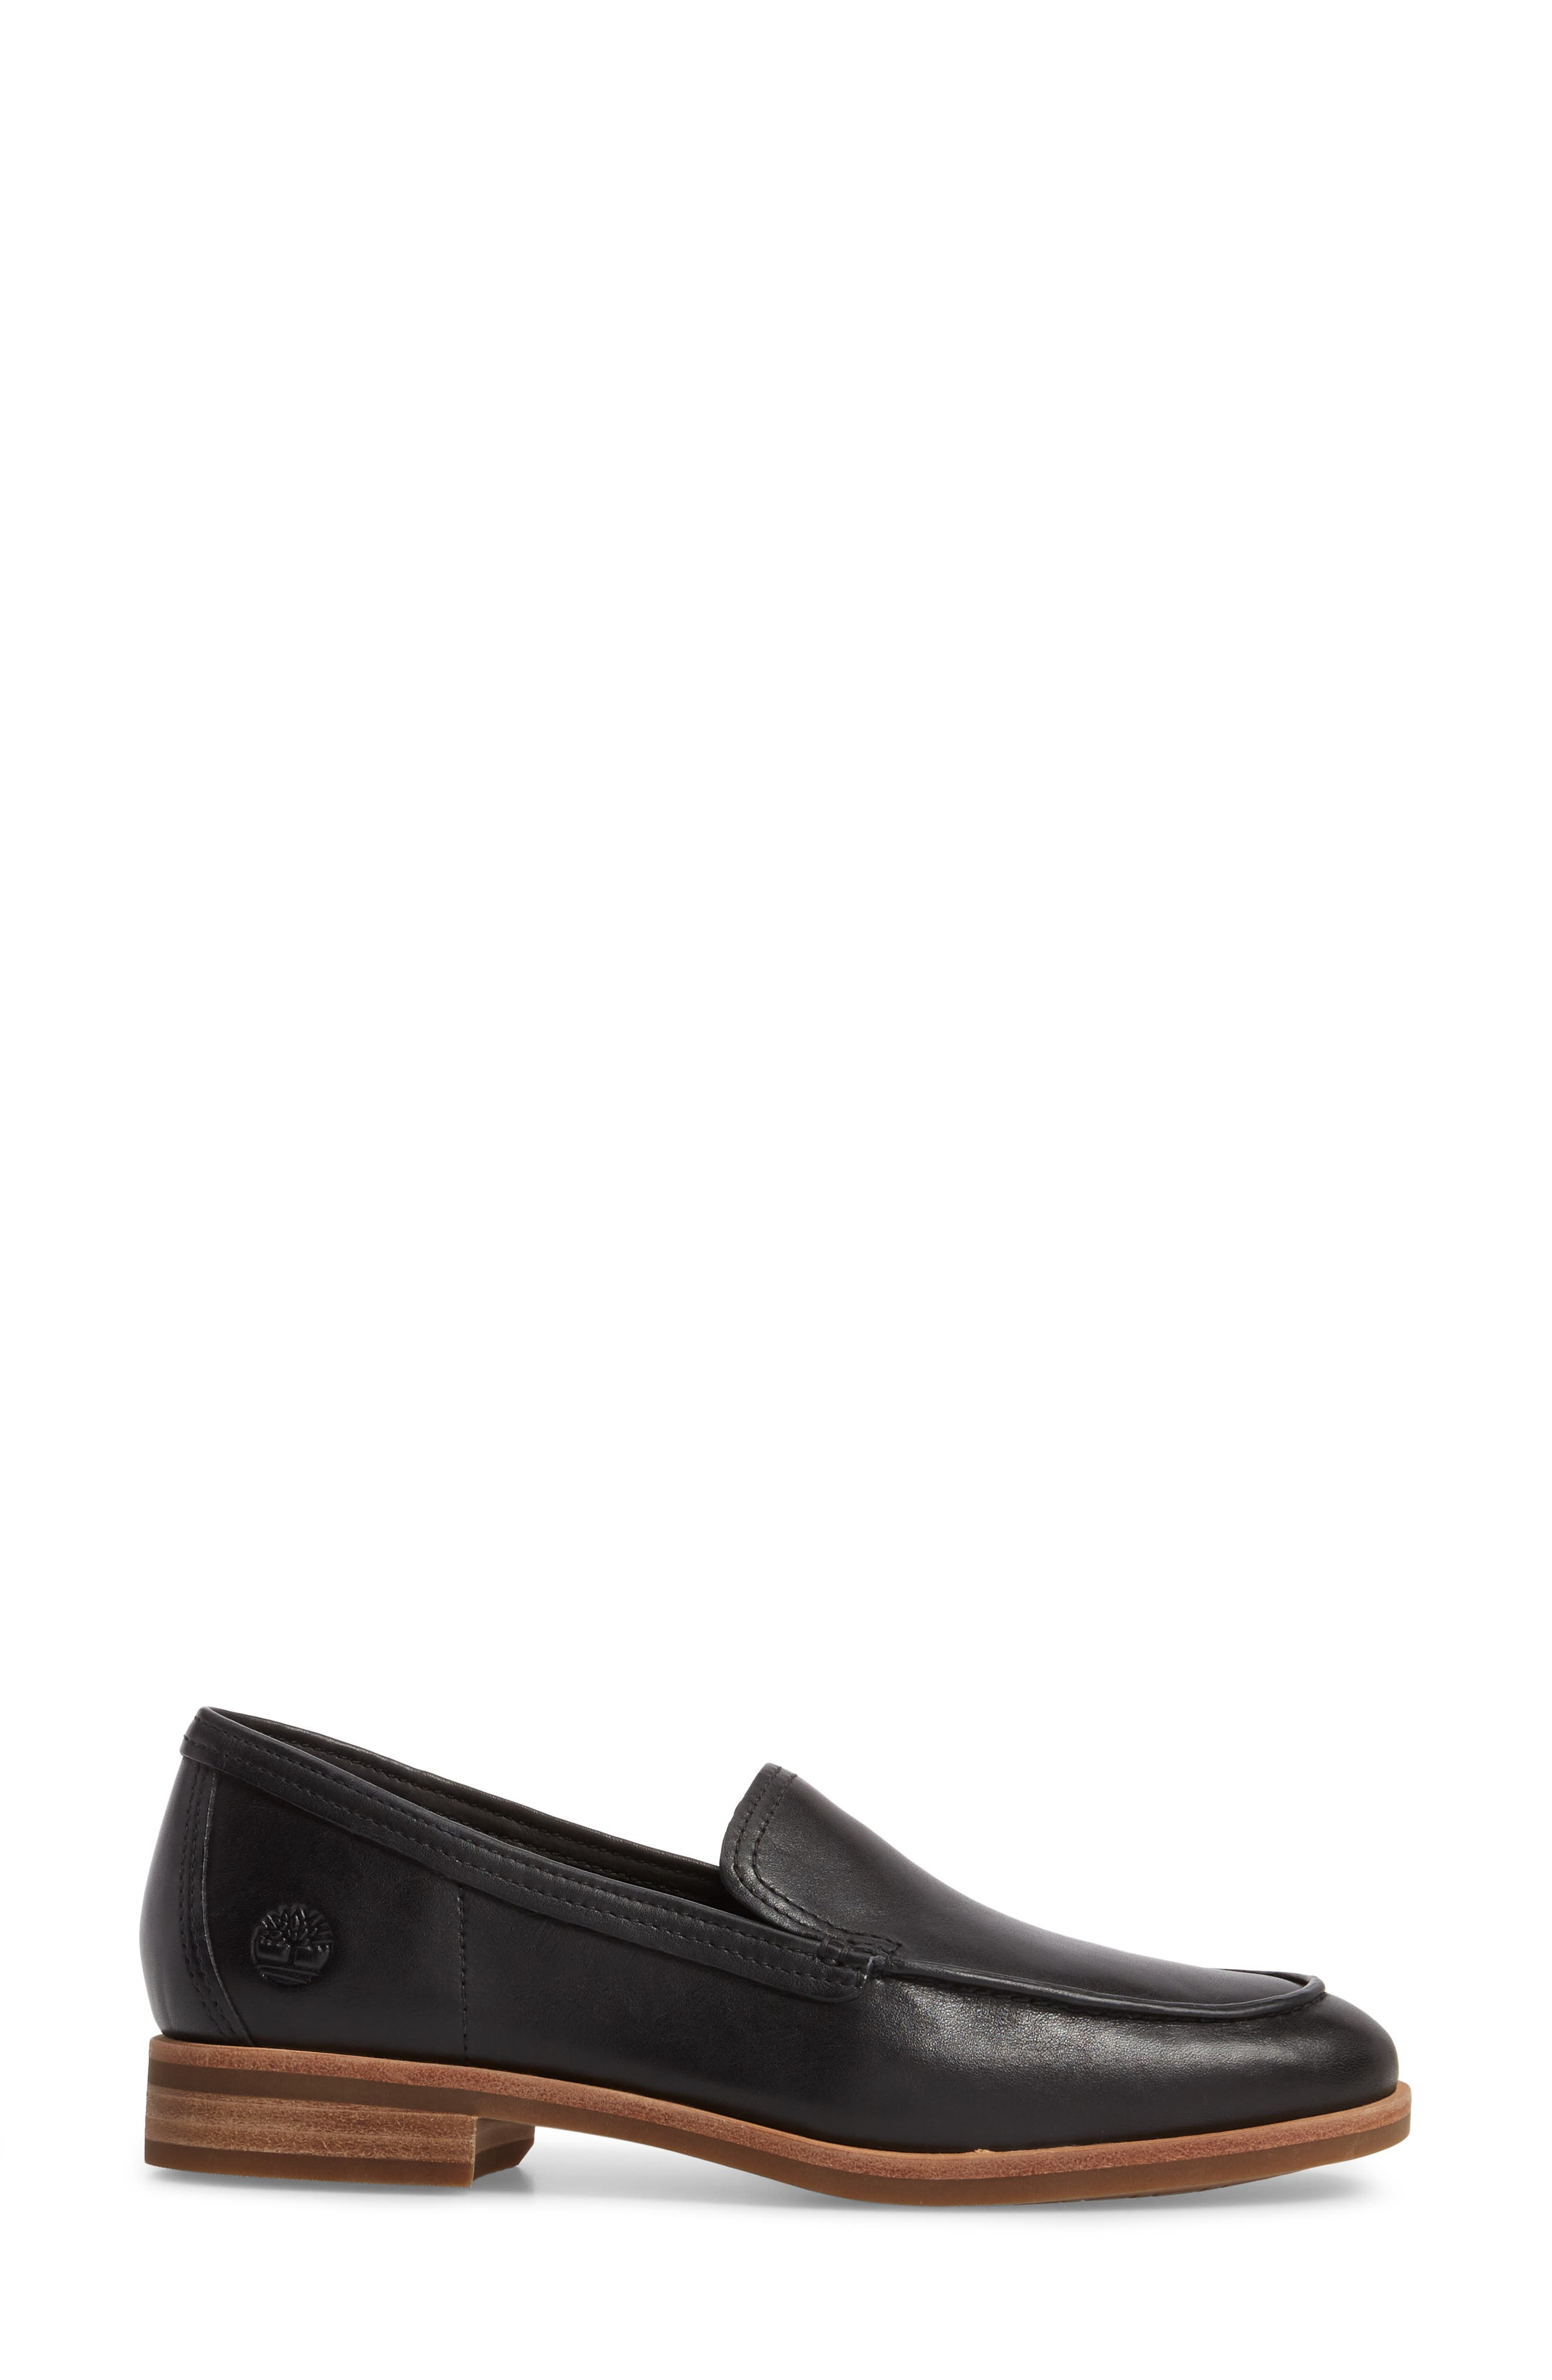 Somers Falls Loafer,                             Alternate thumbnail 3, color,                             001